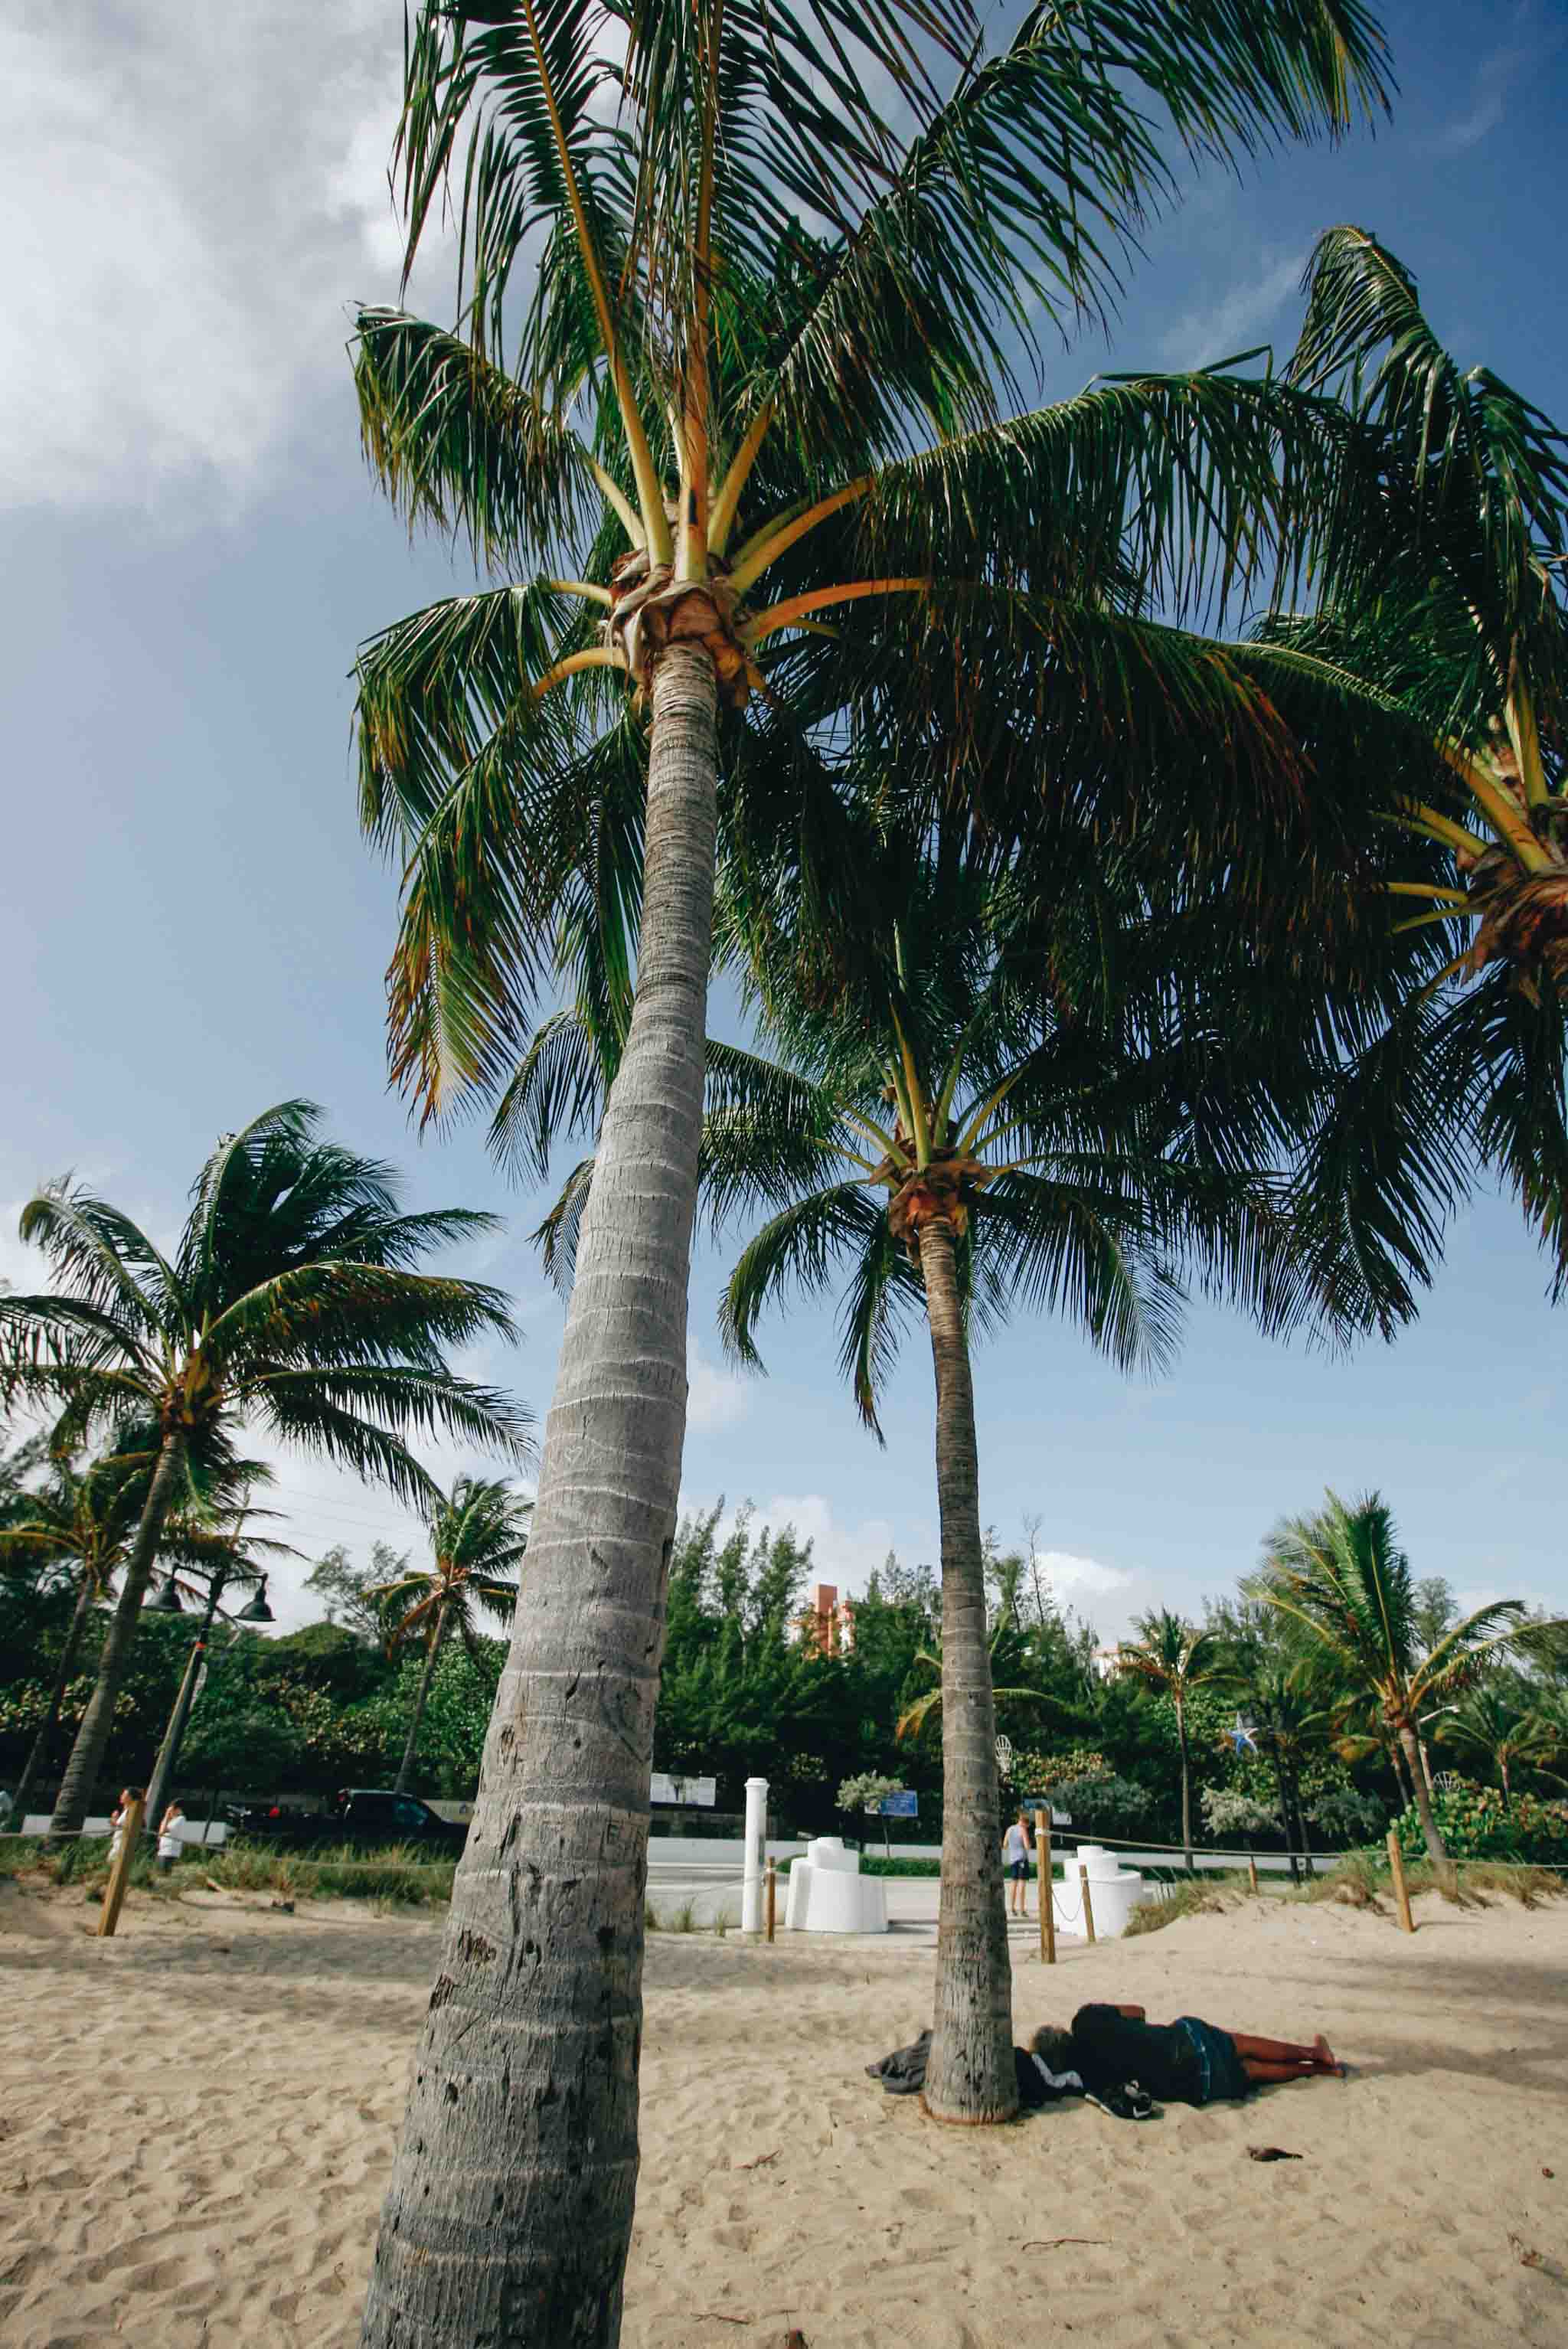 Palm tree on Fort Lauderdale Beach, Florida